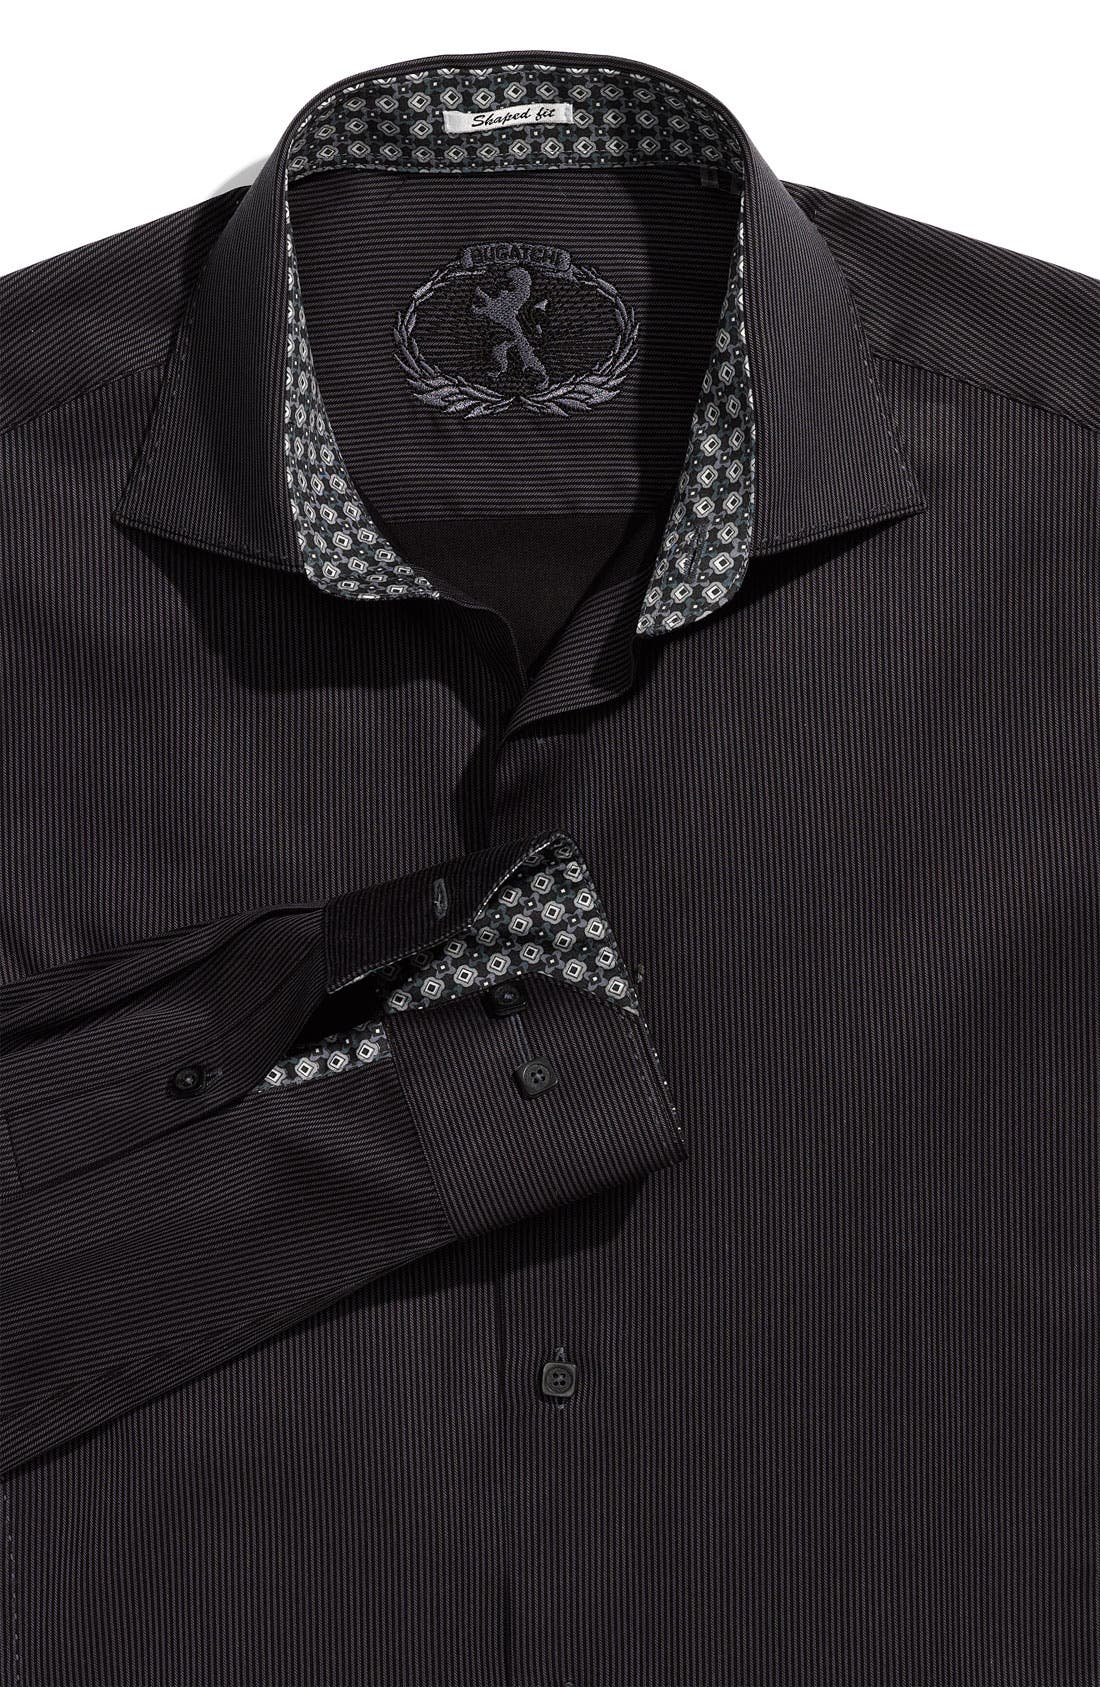 Alternate Image 1 Selected - Bugatchi Uomo 'Shaped Fit' Woven Piqué Sport Shirt